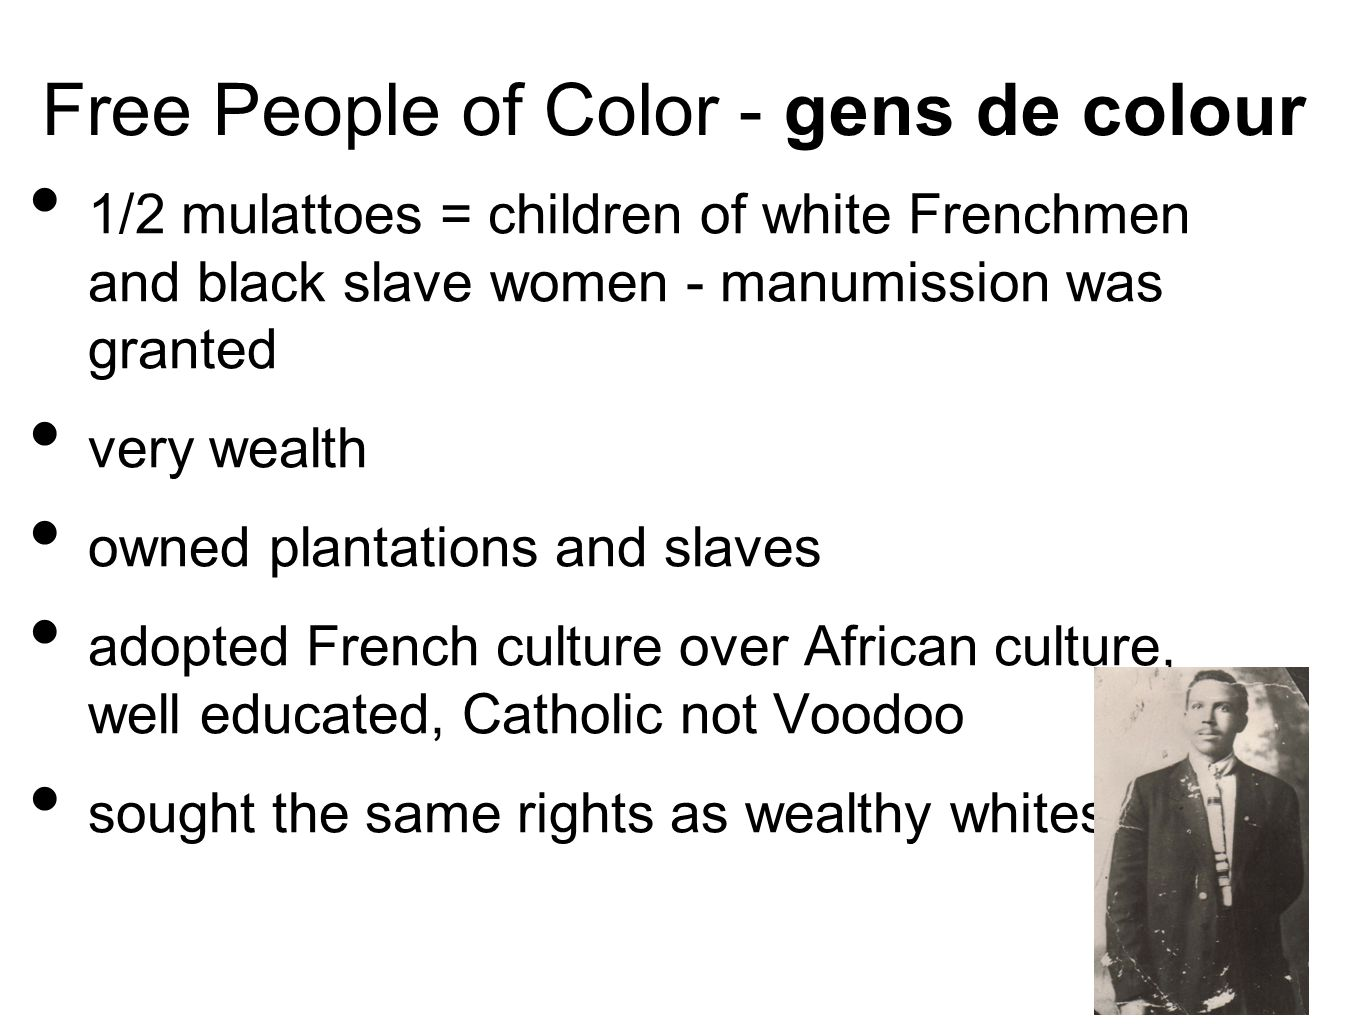 Free People of Color - gens de colour 1/2 mulattoes = children of white Frenchmen and black slave women - manumission was granted very wealth owned plantations and slaves adopted French culture over African culture, well educated, Catholic not Voodoo sought the same rights as wealthy whites